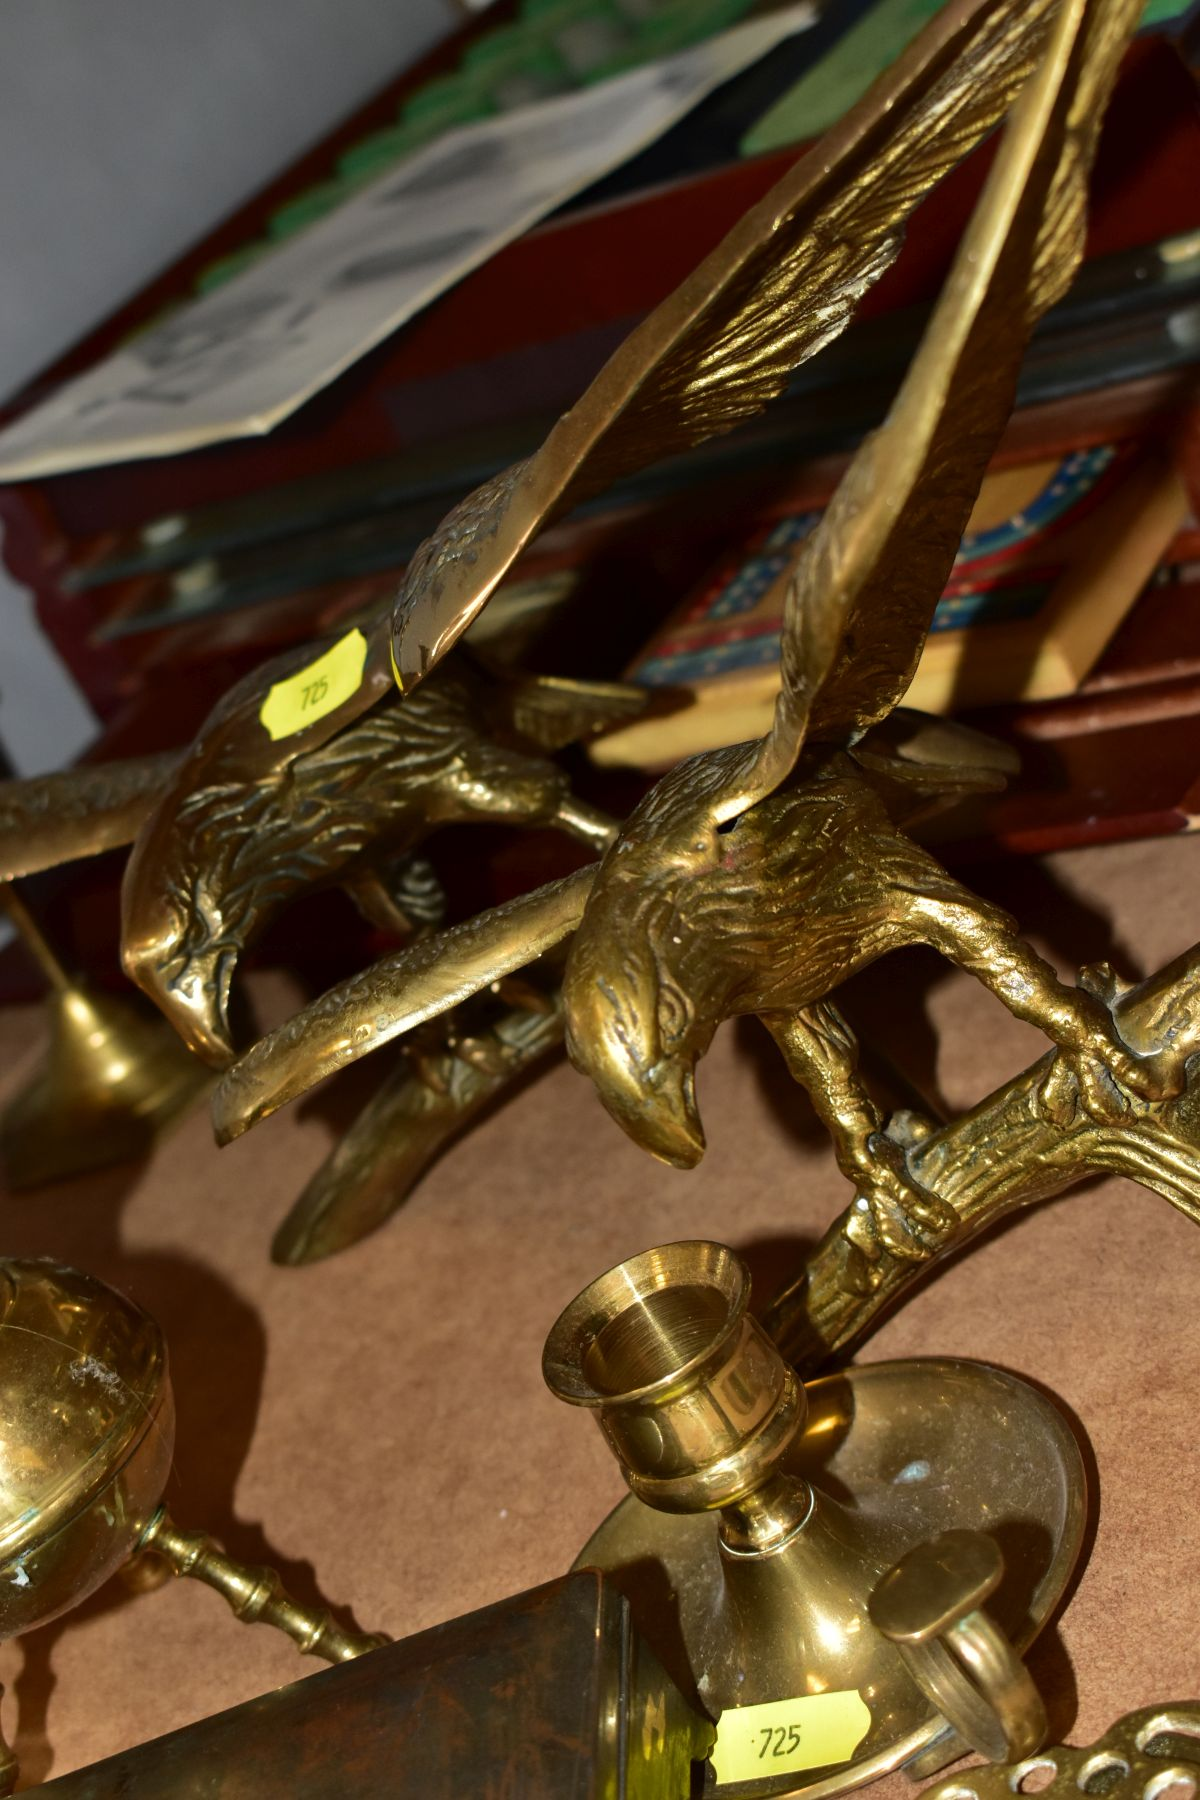 METALWARES AND GAMES BOX to include two brass eagles perched on branches, tallest approximate - Image 6 of 9